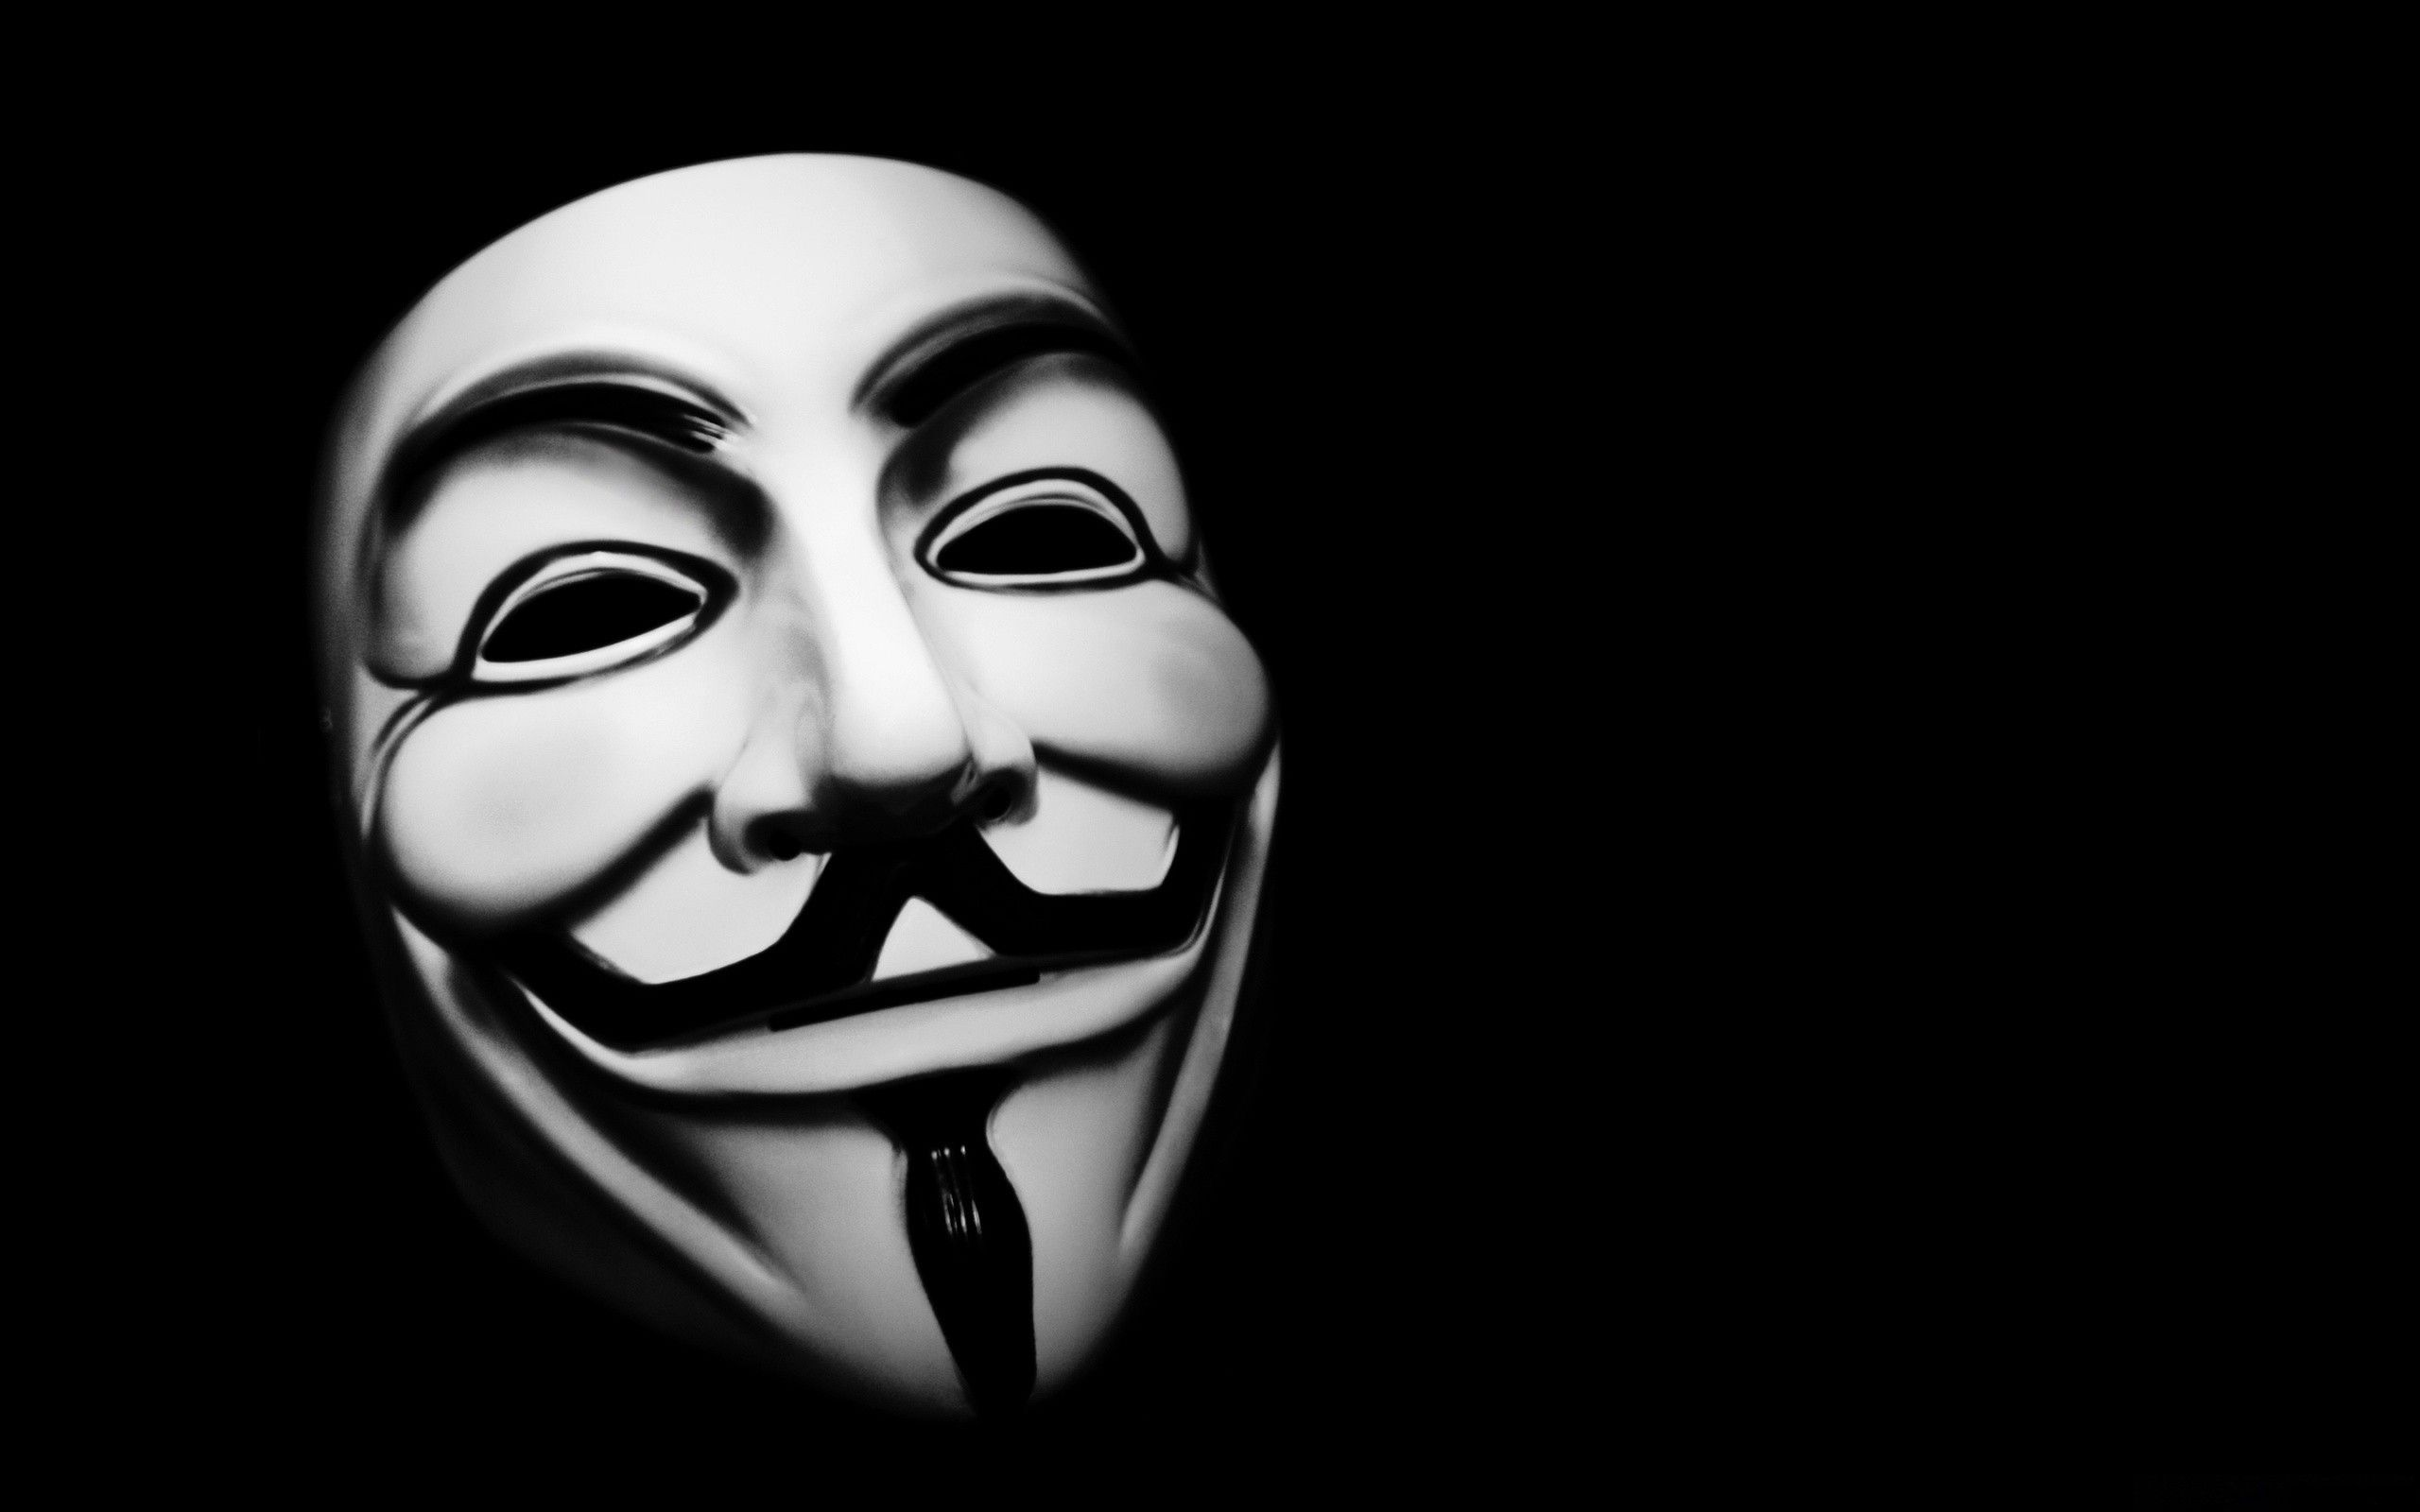 Guy Fawkes Mask Background Anonymous Mask Vendetta Mask V For